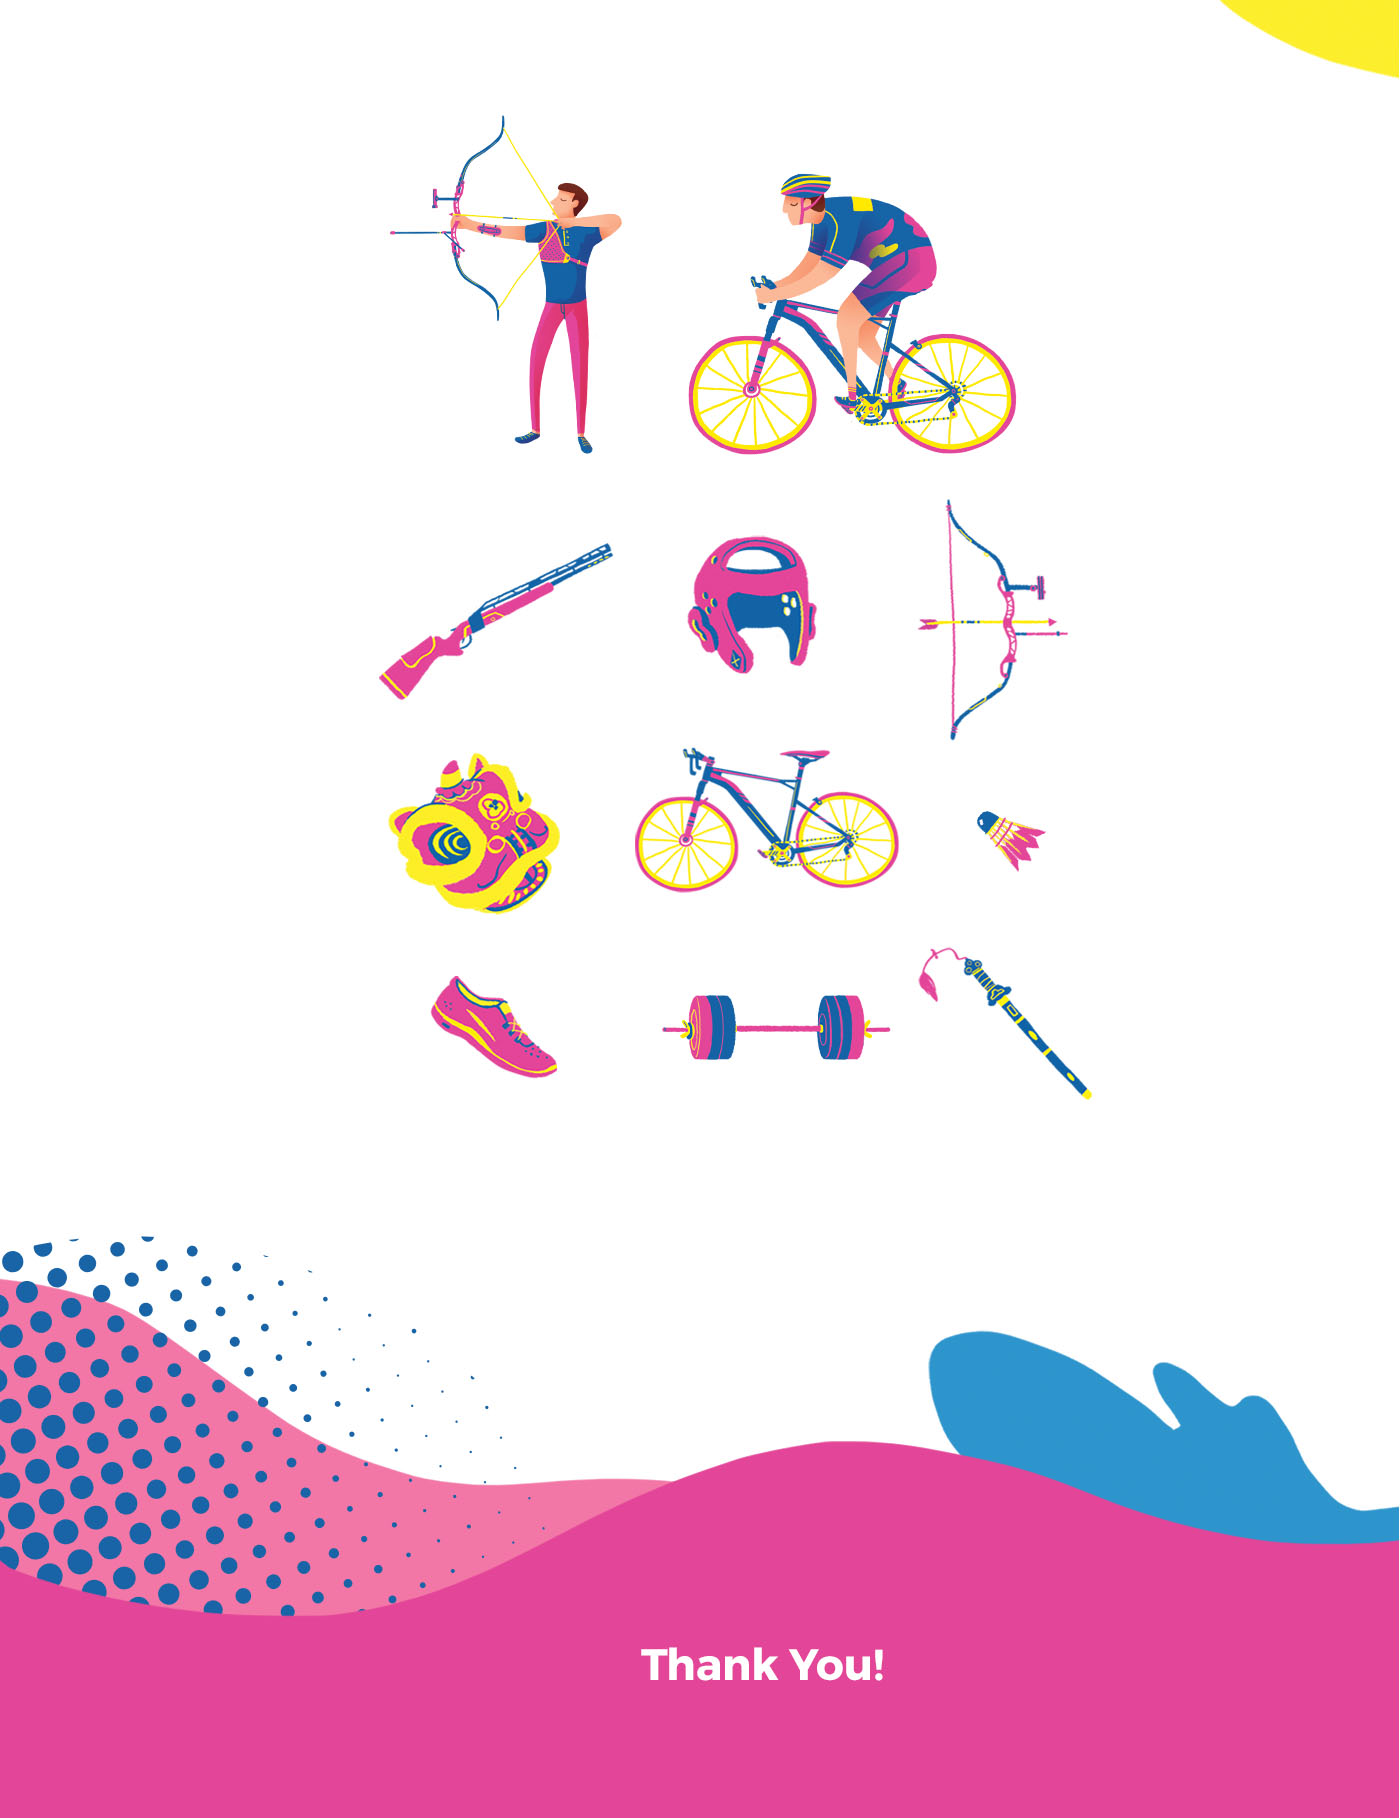 sport game event illustration archery and cycling